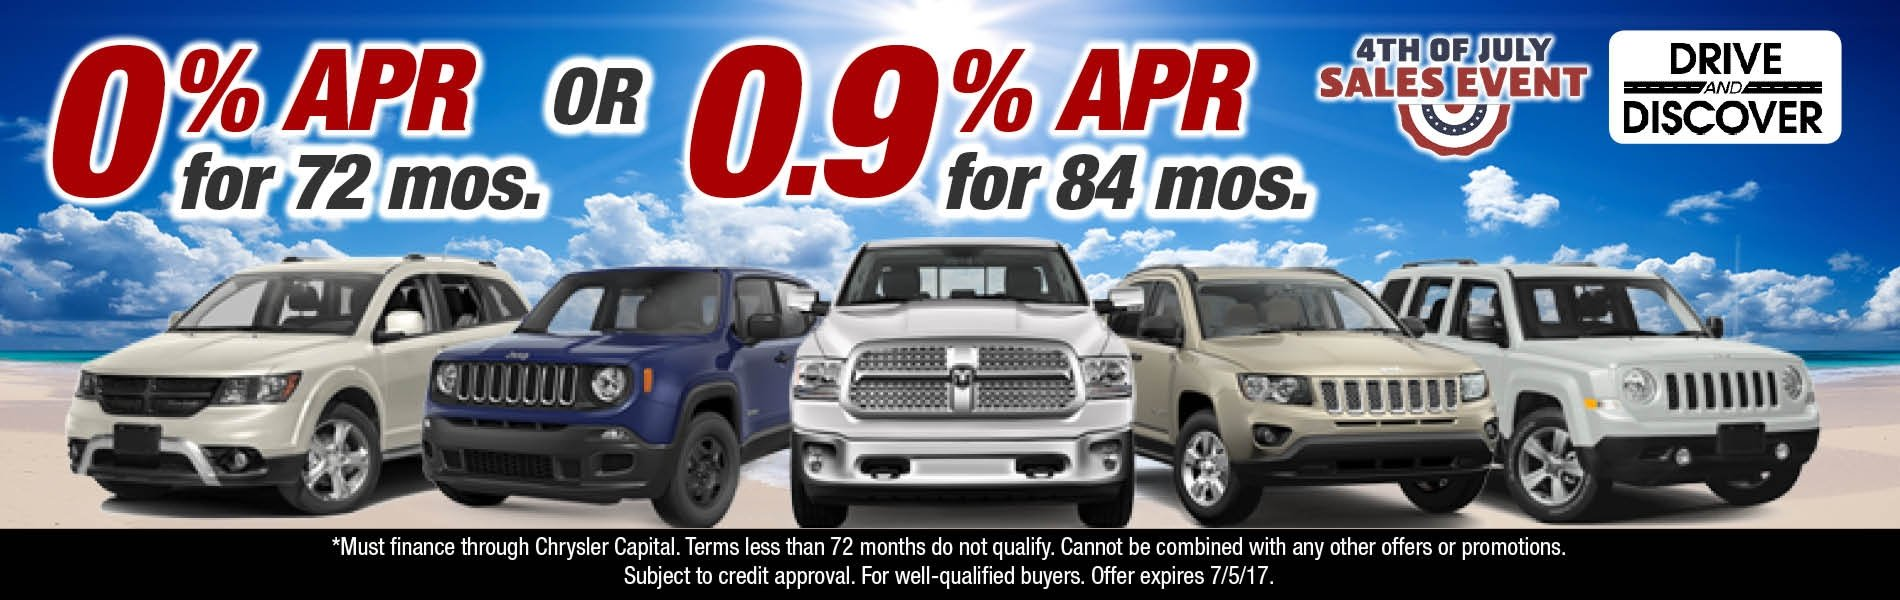 0% APR for 72 Months Or 0.9% APR for 84 Months